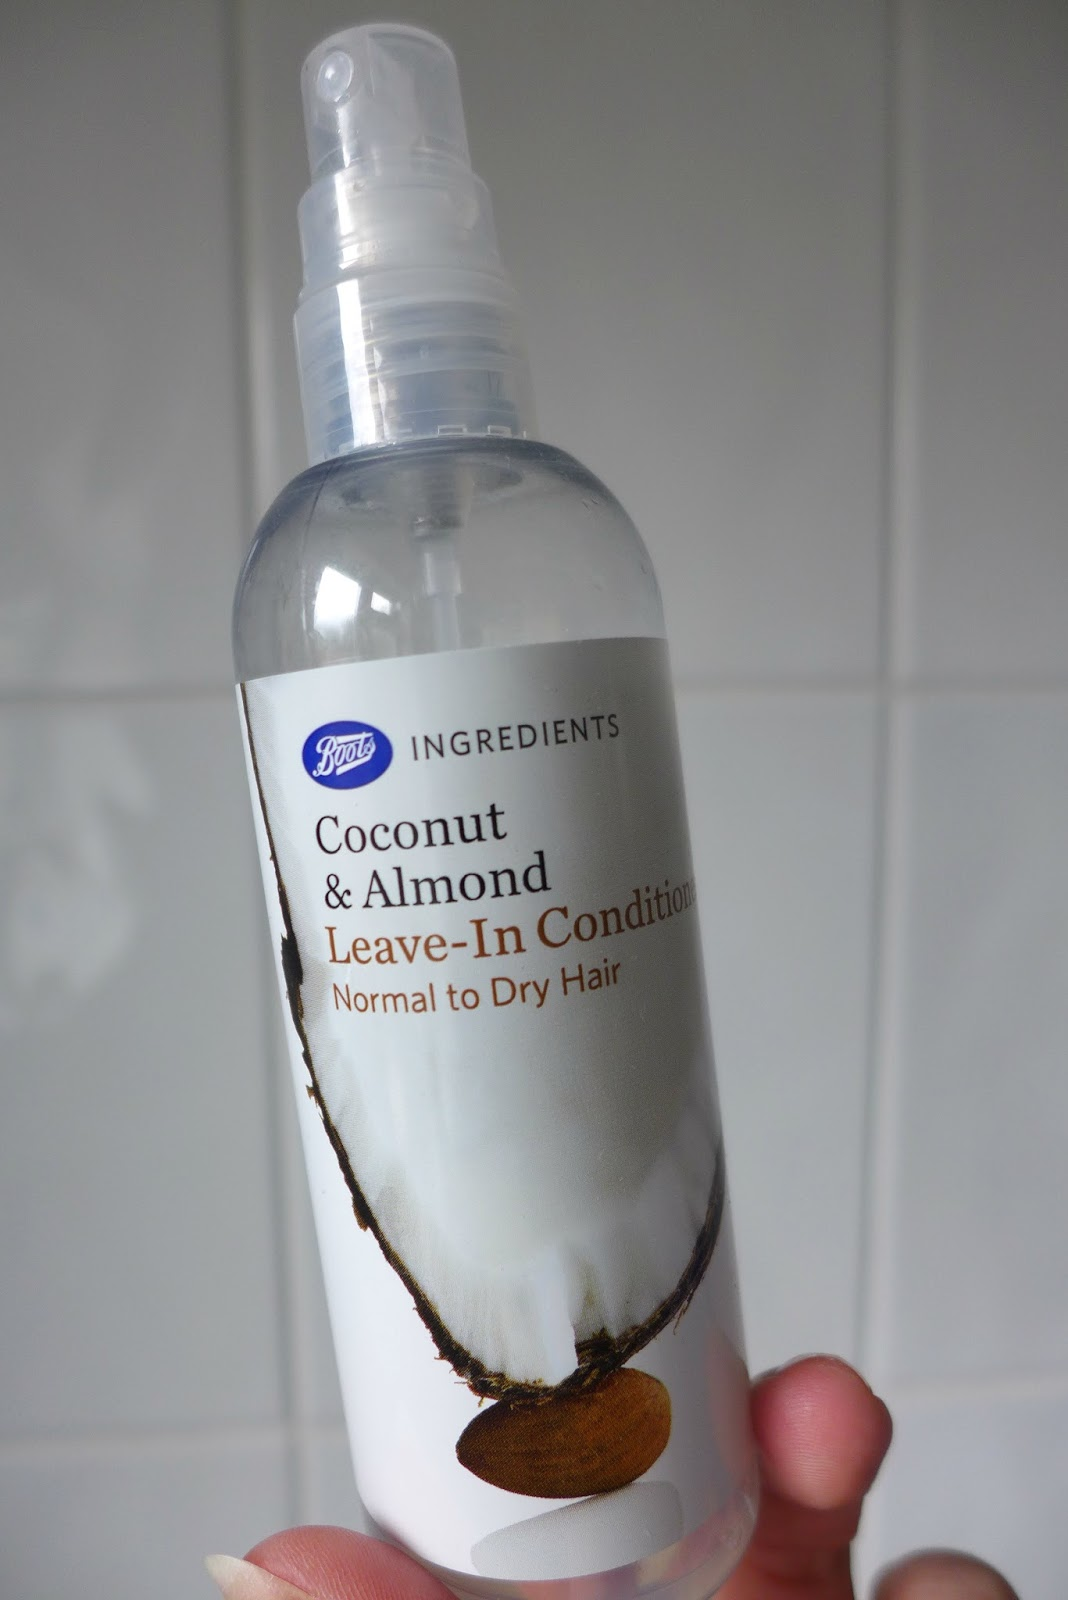 Boots Coconut